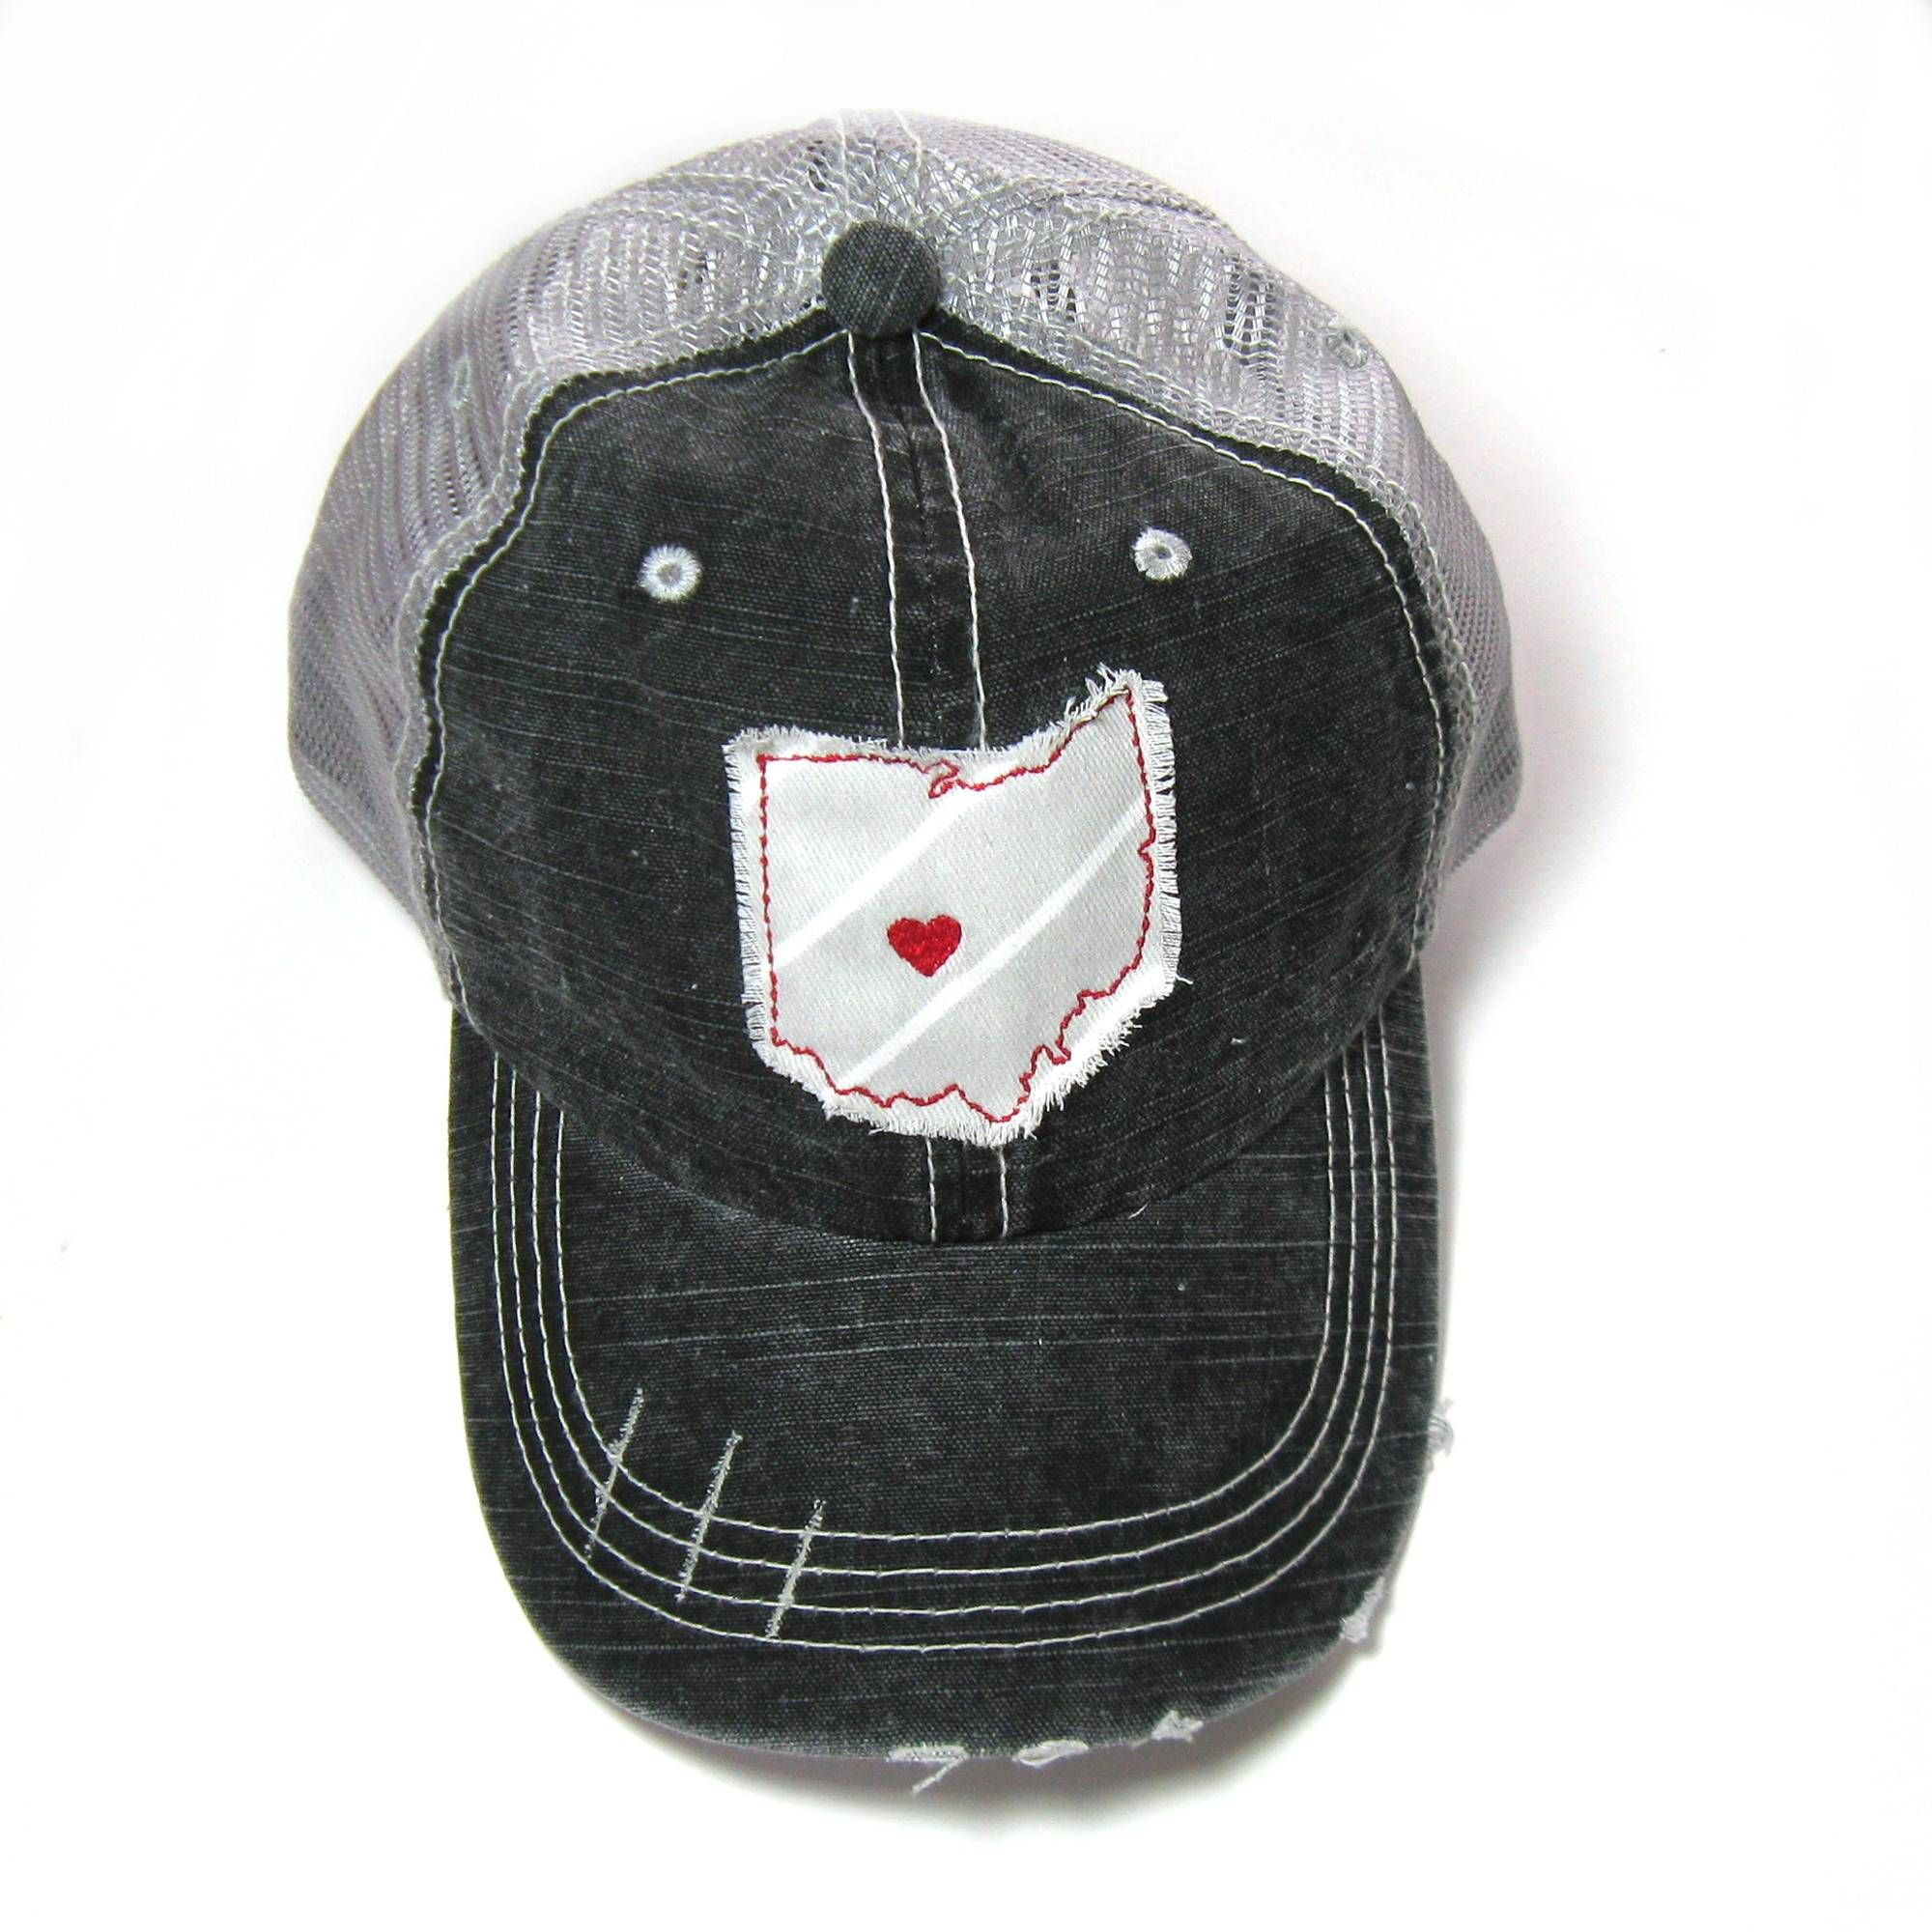 275b8fd92fb7a Black and Gray Distressed Trucker Hat - Ohio State Colors - Heart over  Columbus